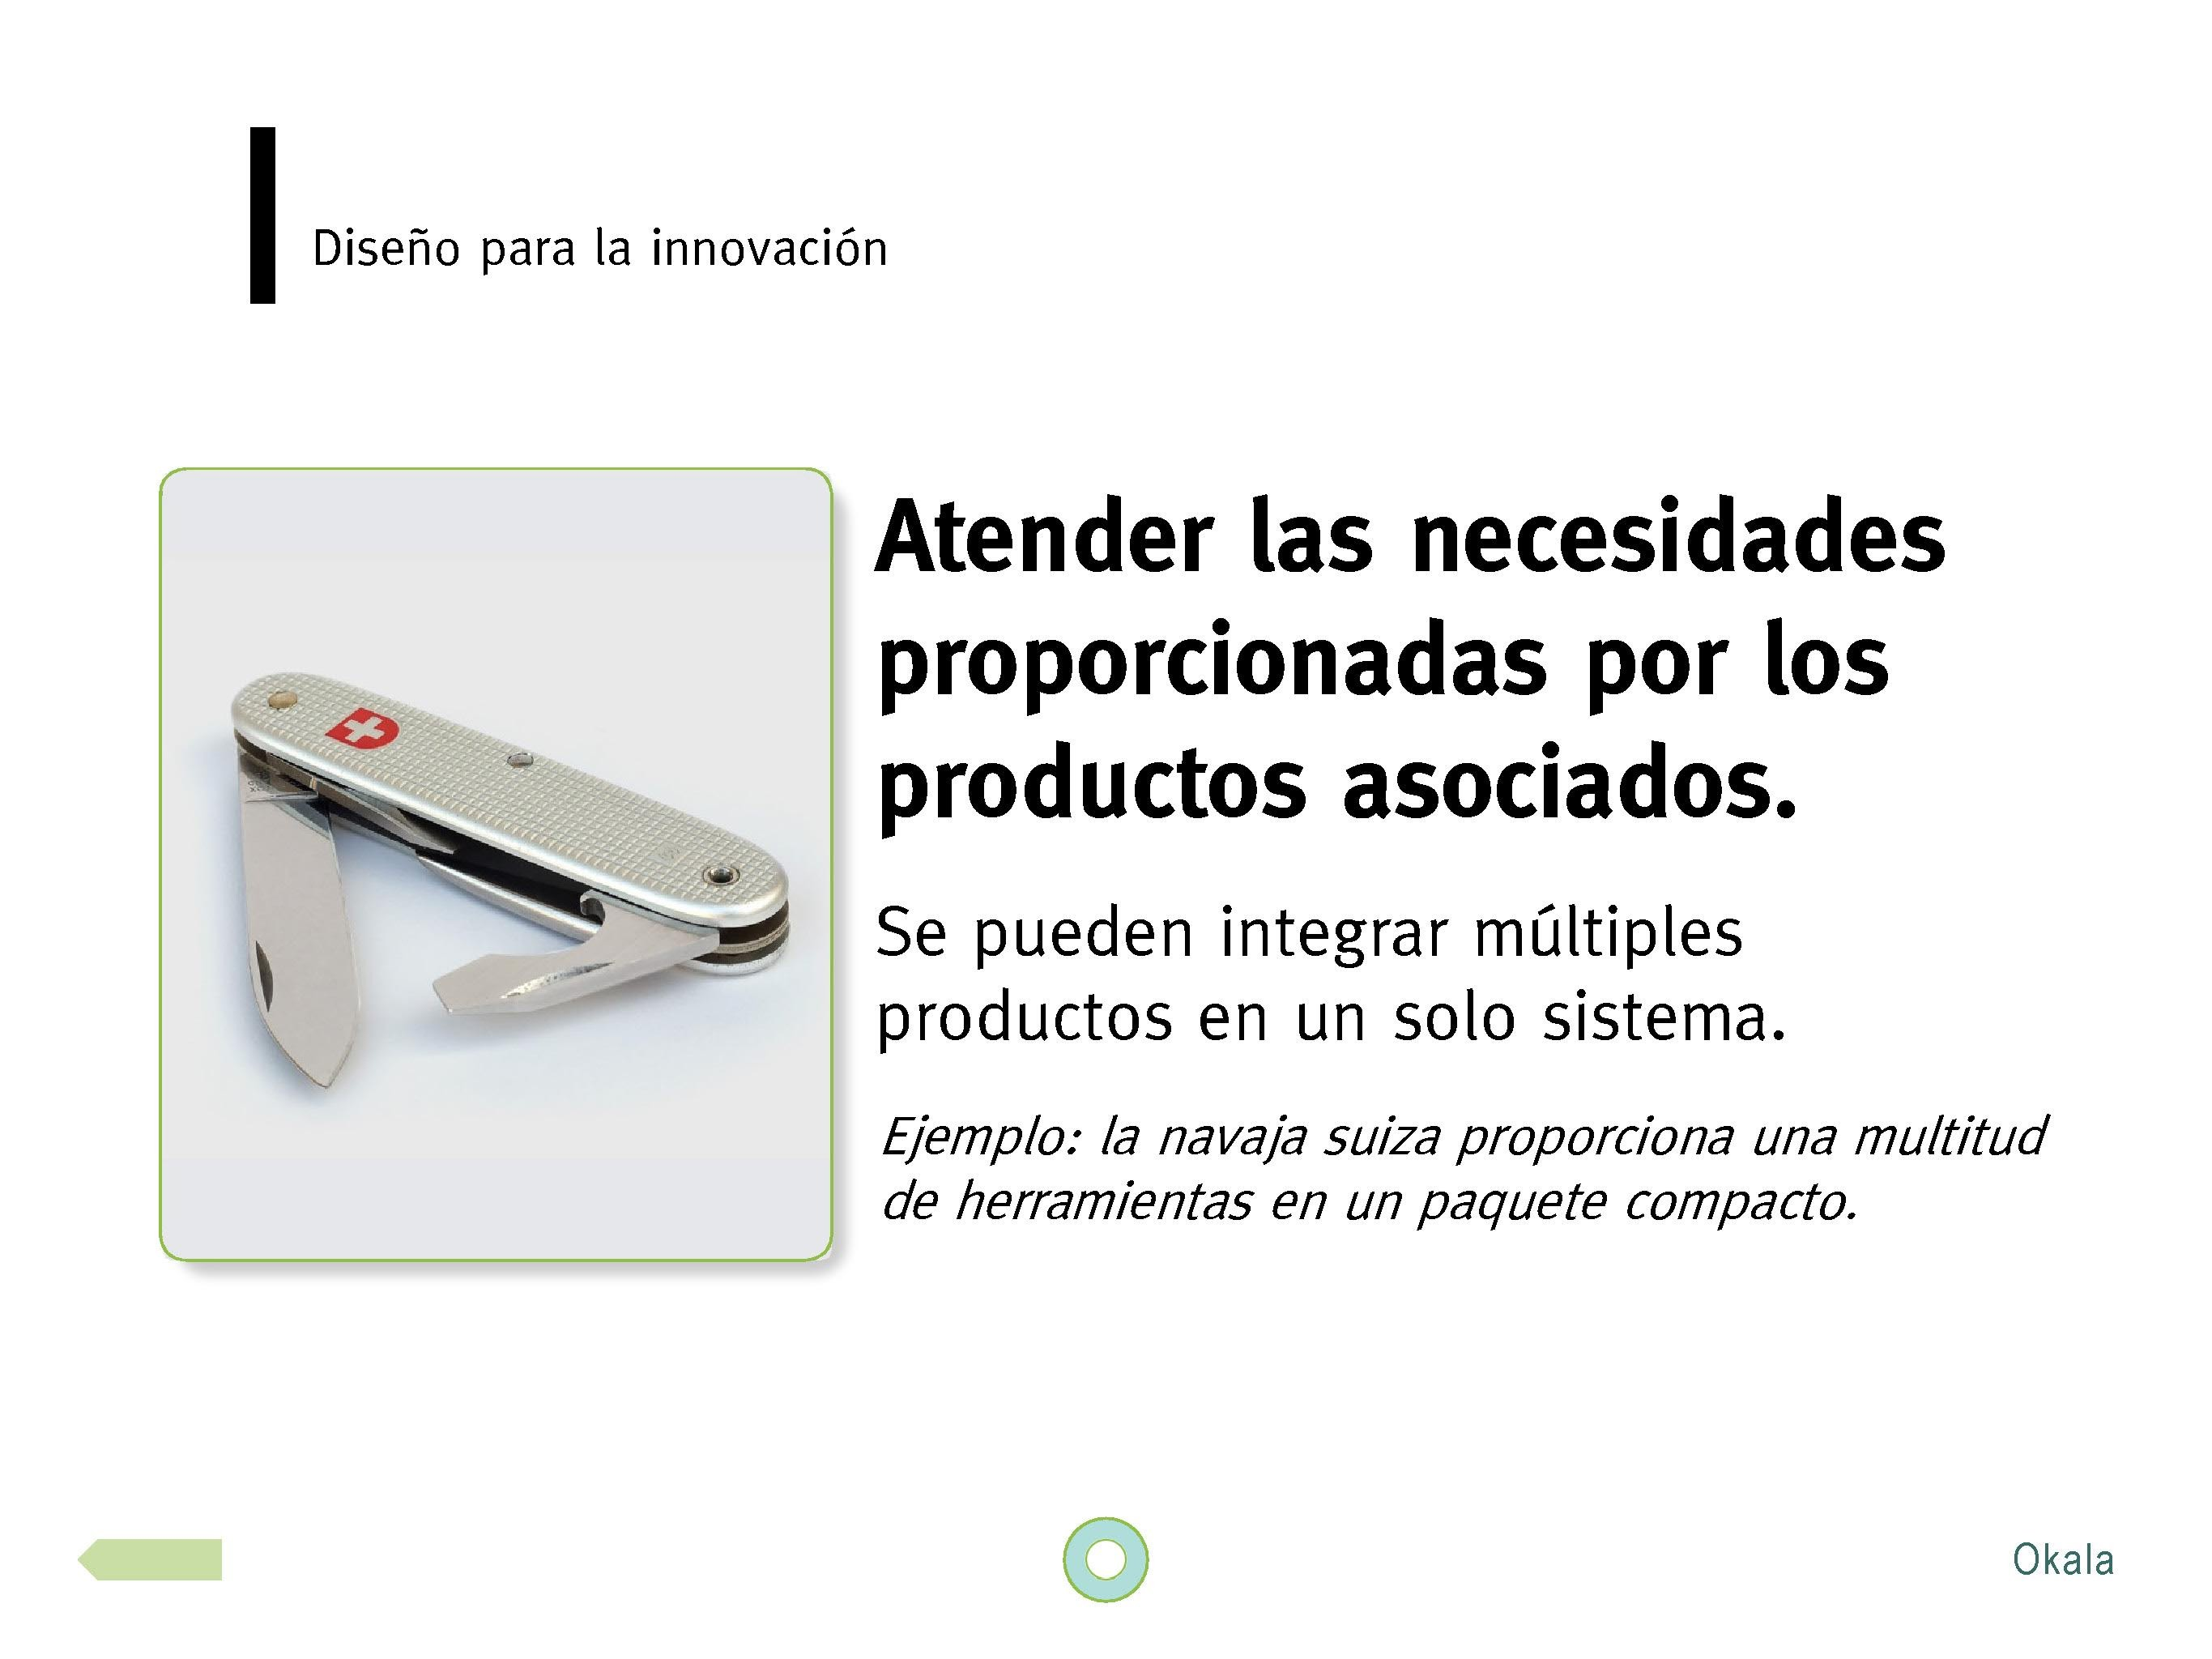 okala-ecodesign-strategy-guide-2012-spanish.new_page_04-1